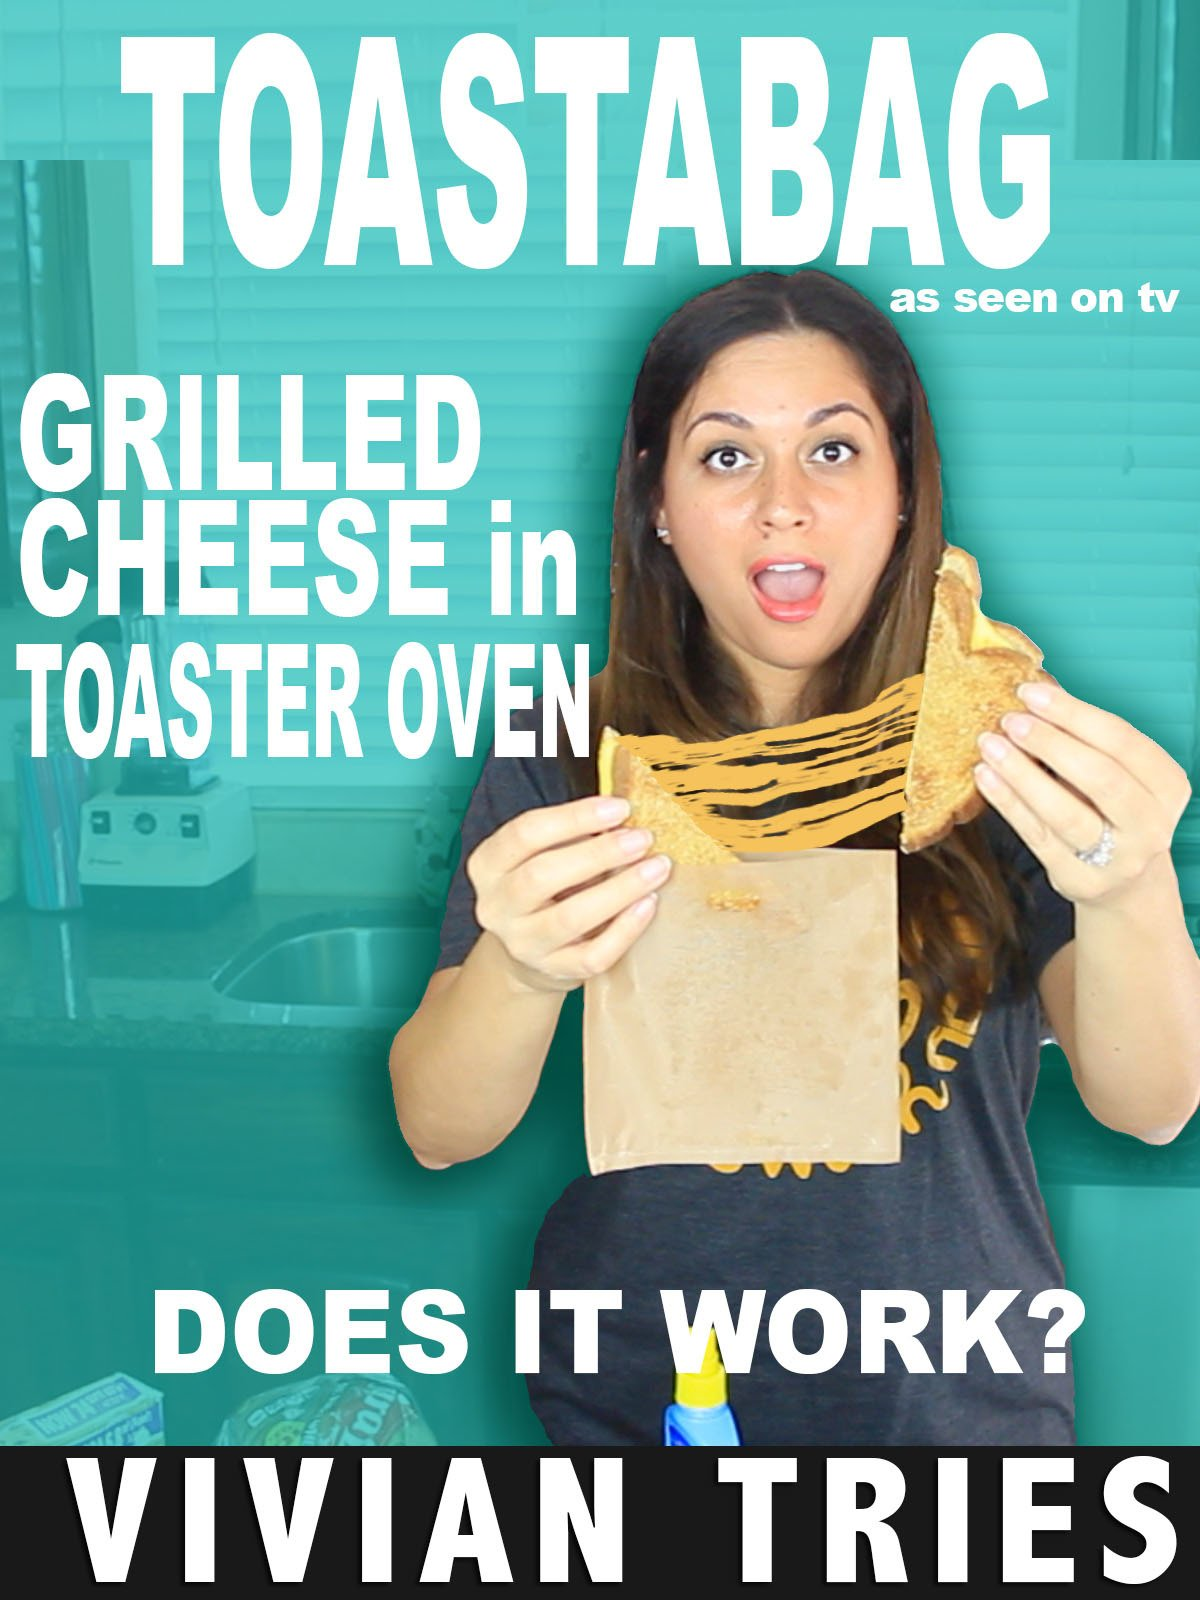 Review: Vivian Tries Toastabag Grilled Cheese in Toaster Oven